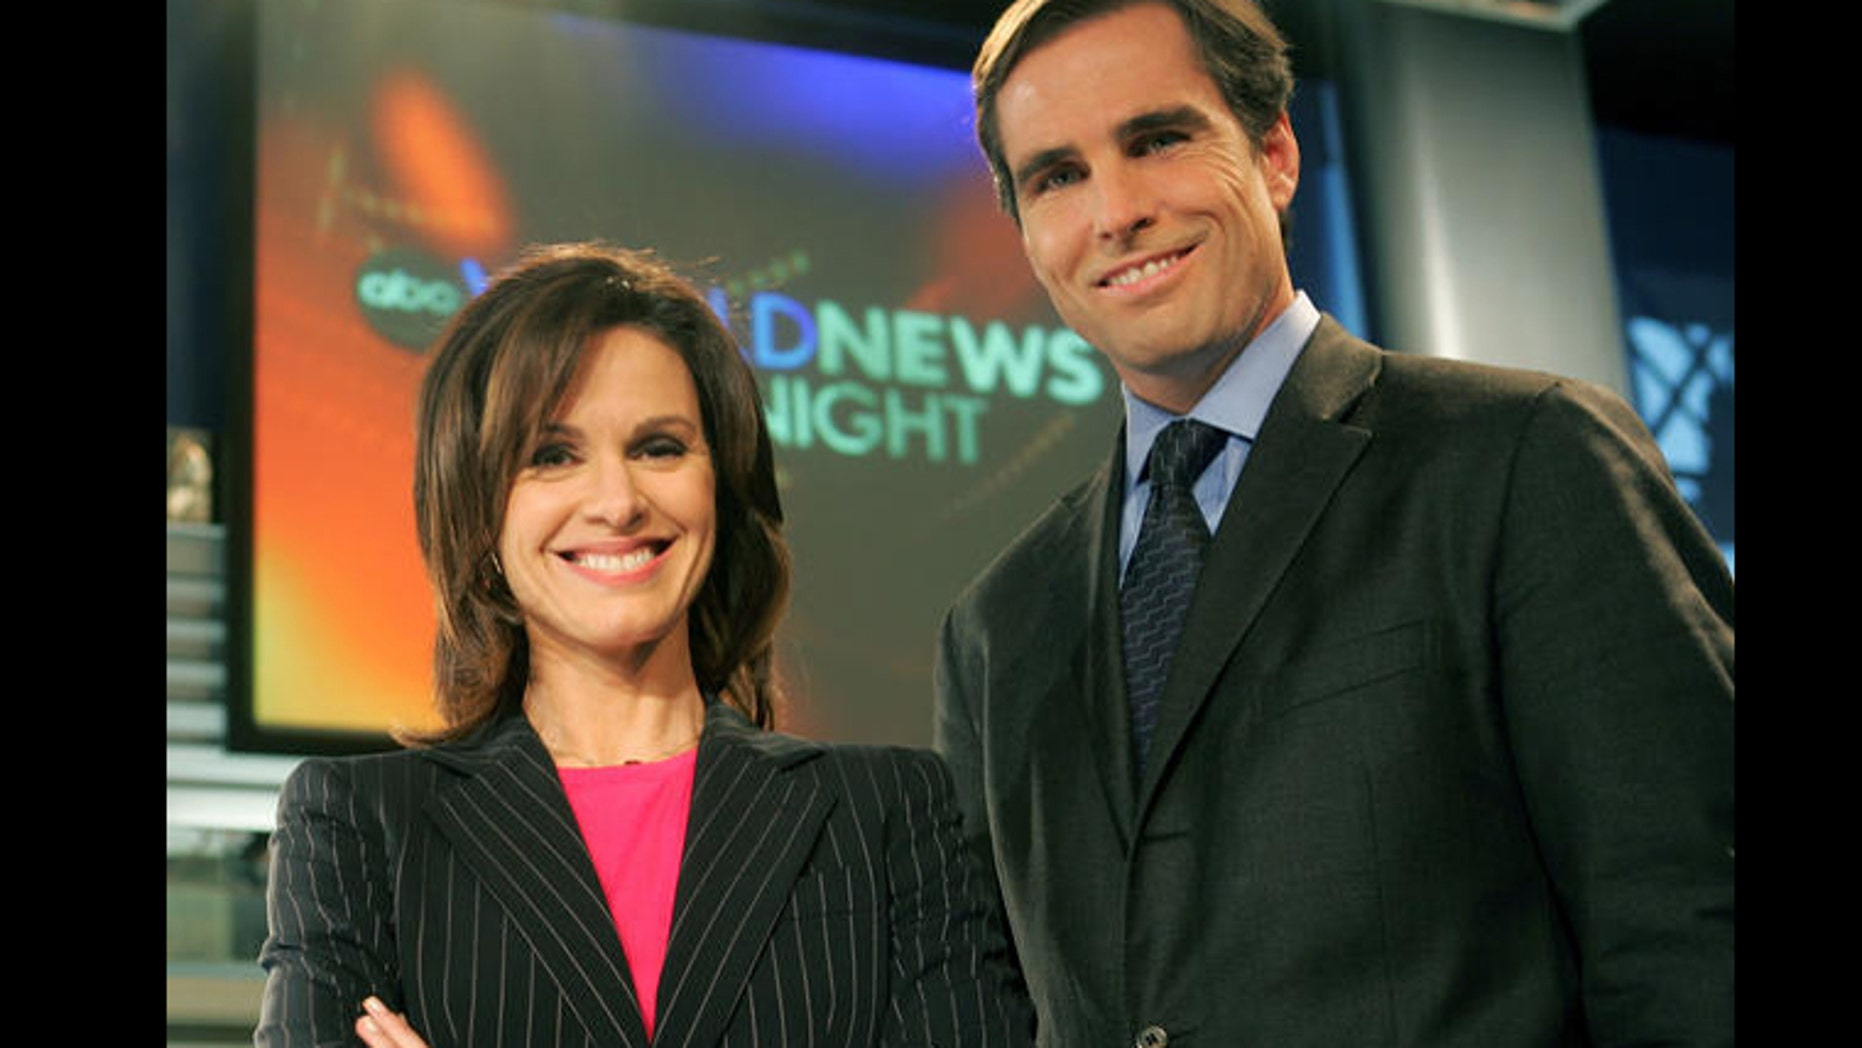 """Elizabeth Vargas and Bob Woodruff pose in the studio for ABC's """"World News Tonight,"""" Monday, Dec. 5, 2005, in New York after the network's news division announced the pair would co-anchor the news show beginning Jan. 3, 2006."""